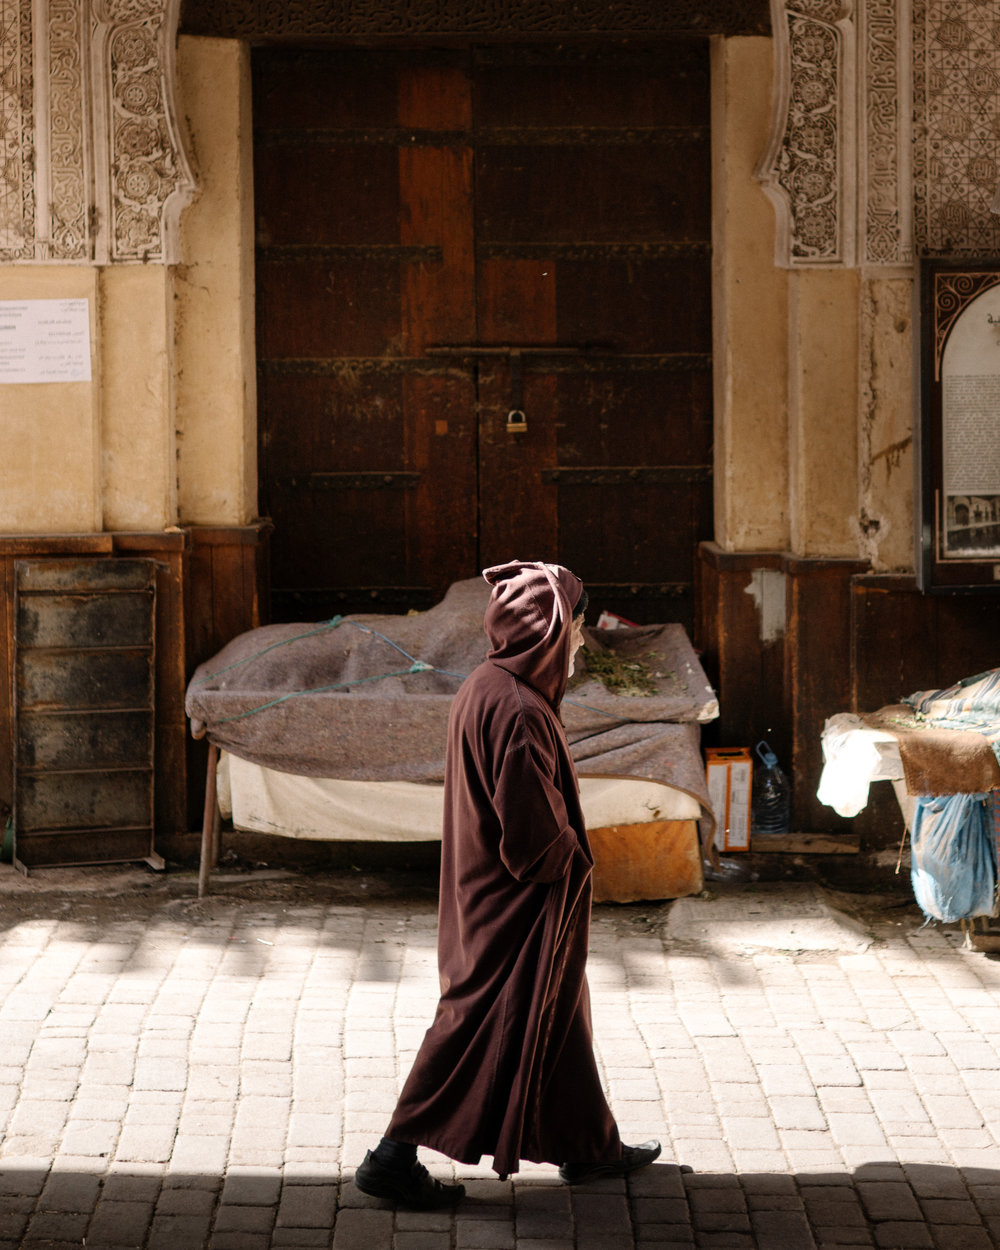 FEZ: A senior man in a traditional djellaba walks through the medina.